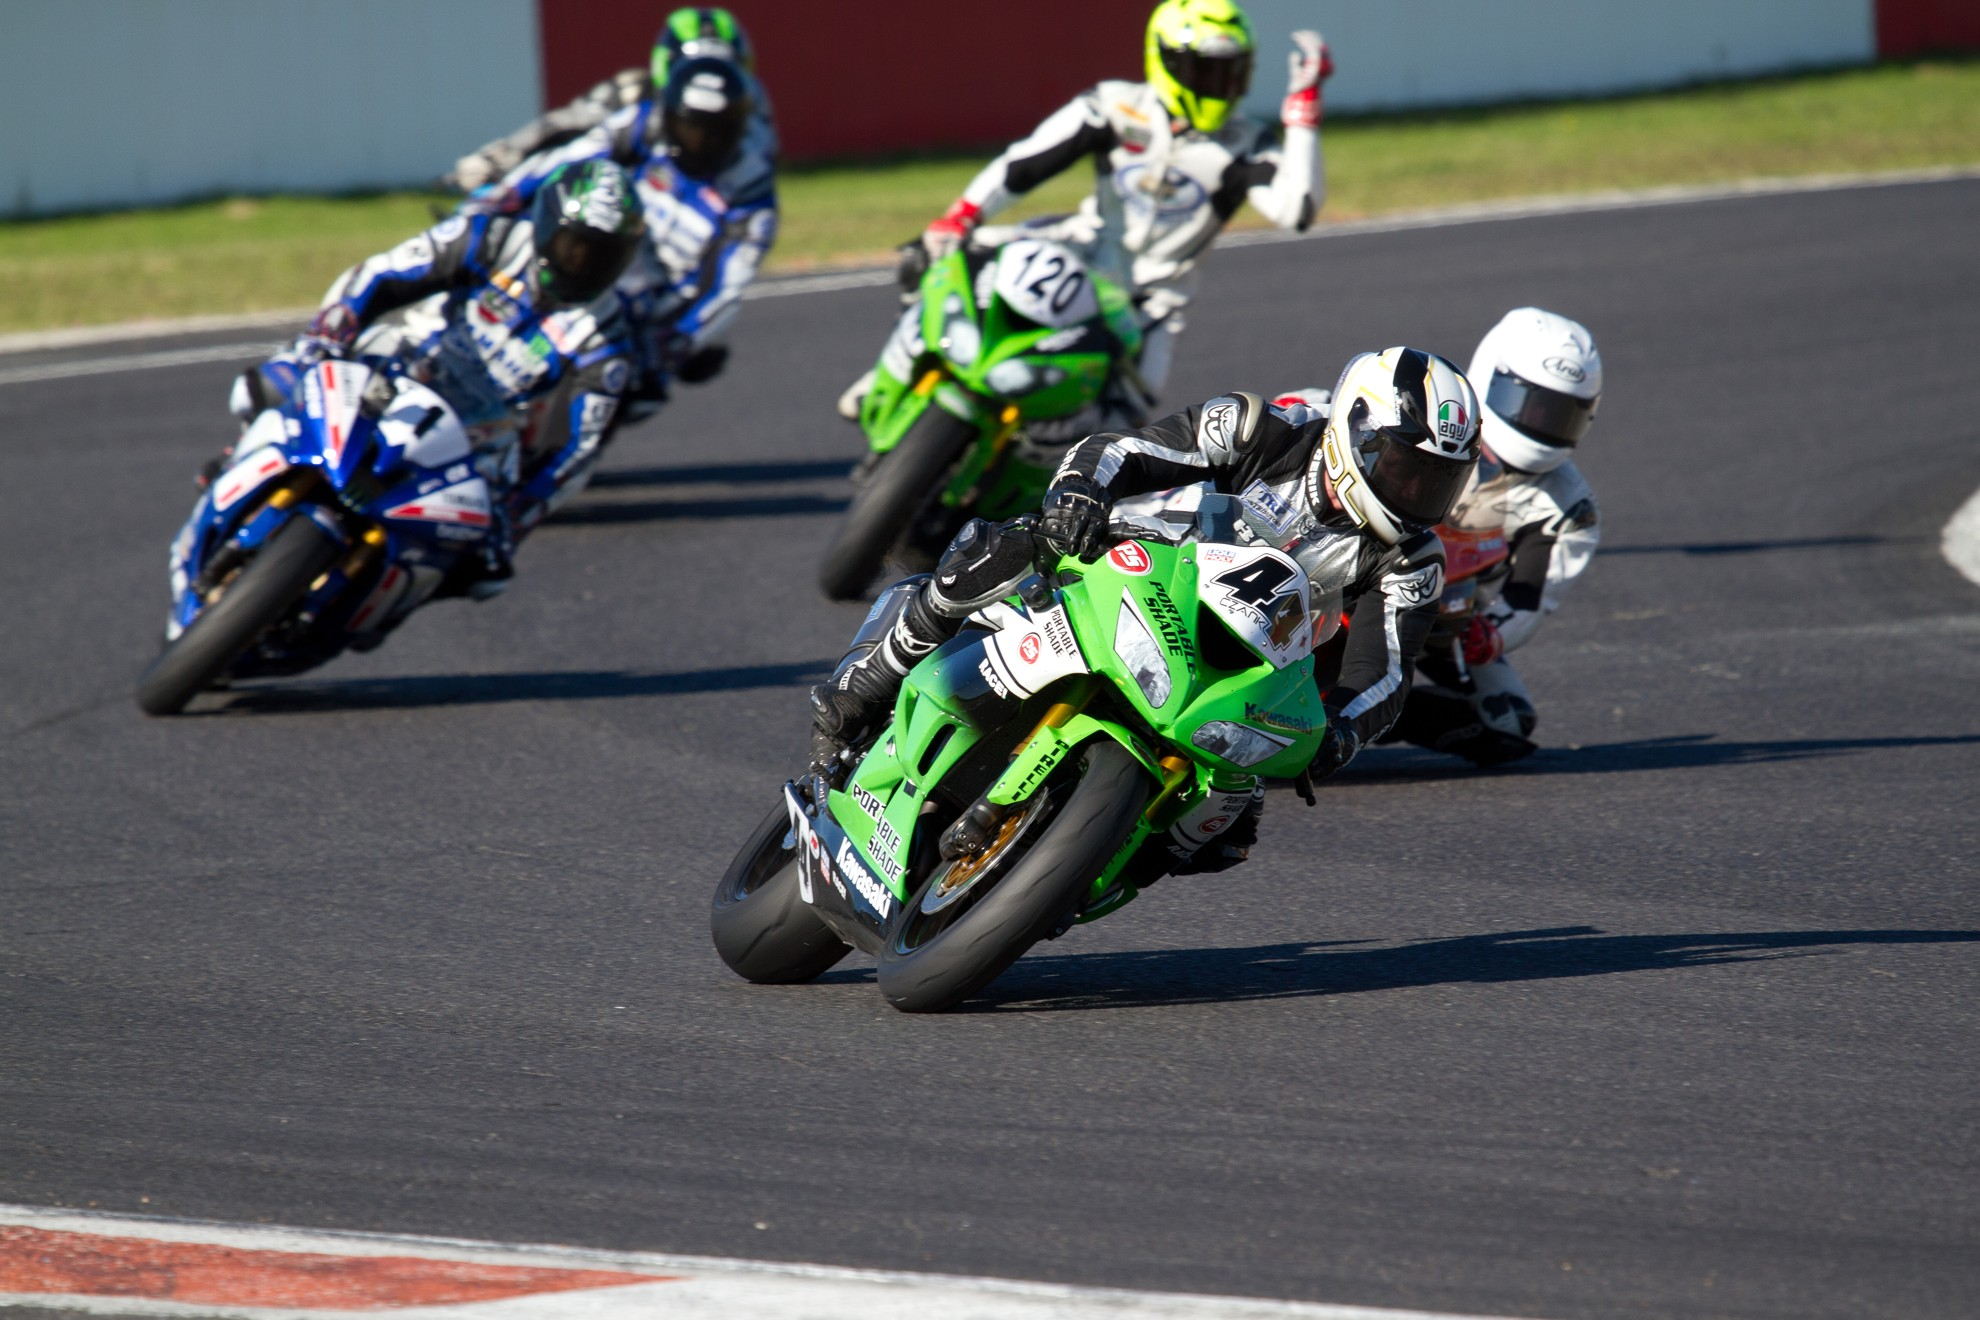 FIM_Superbike_World_Championship